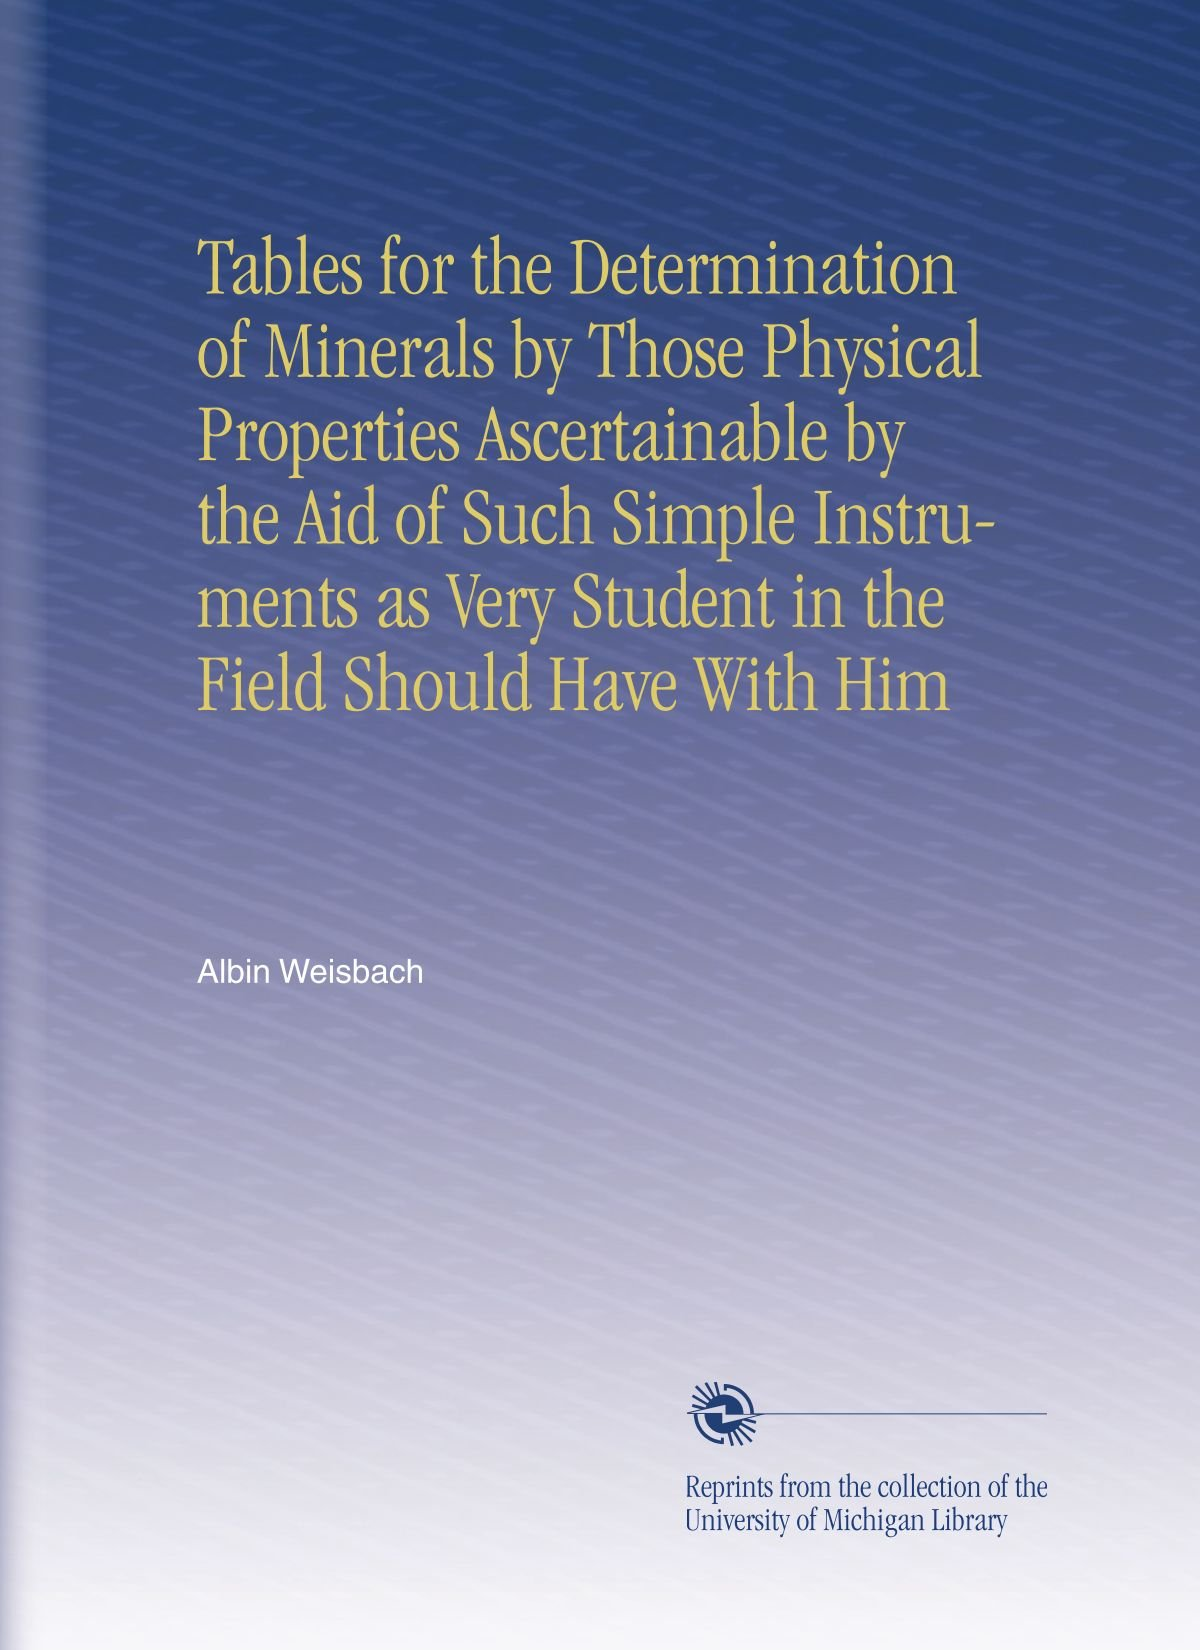 Tables for the Determination of Minerals by Those Physical Properties Ascertainable by the Aid of Such Simple Instruments as Very Student in the Field Should Have With Him ebook